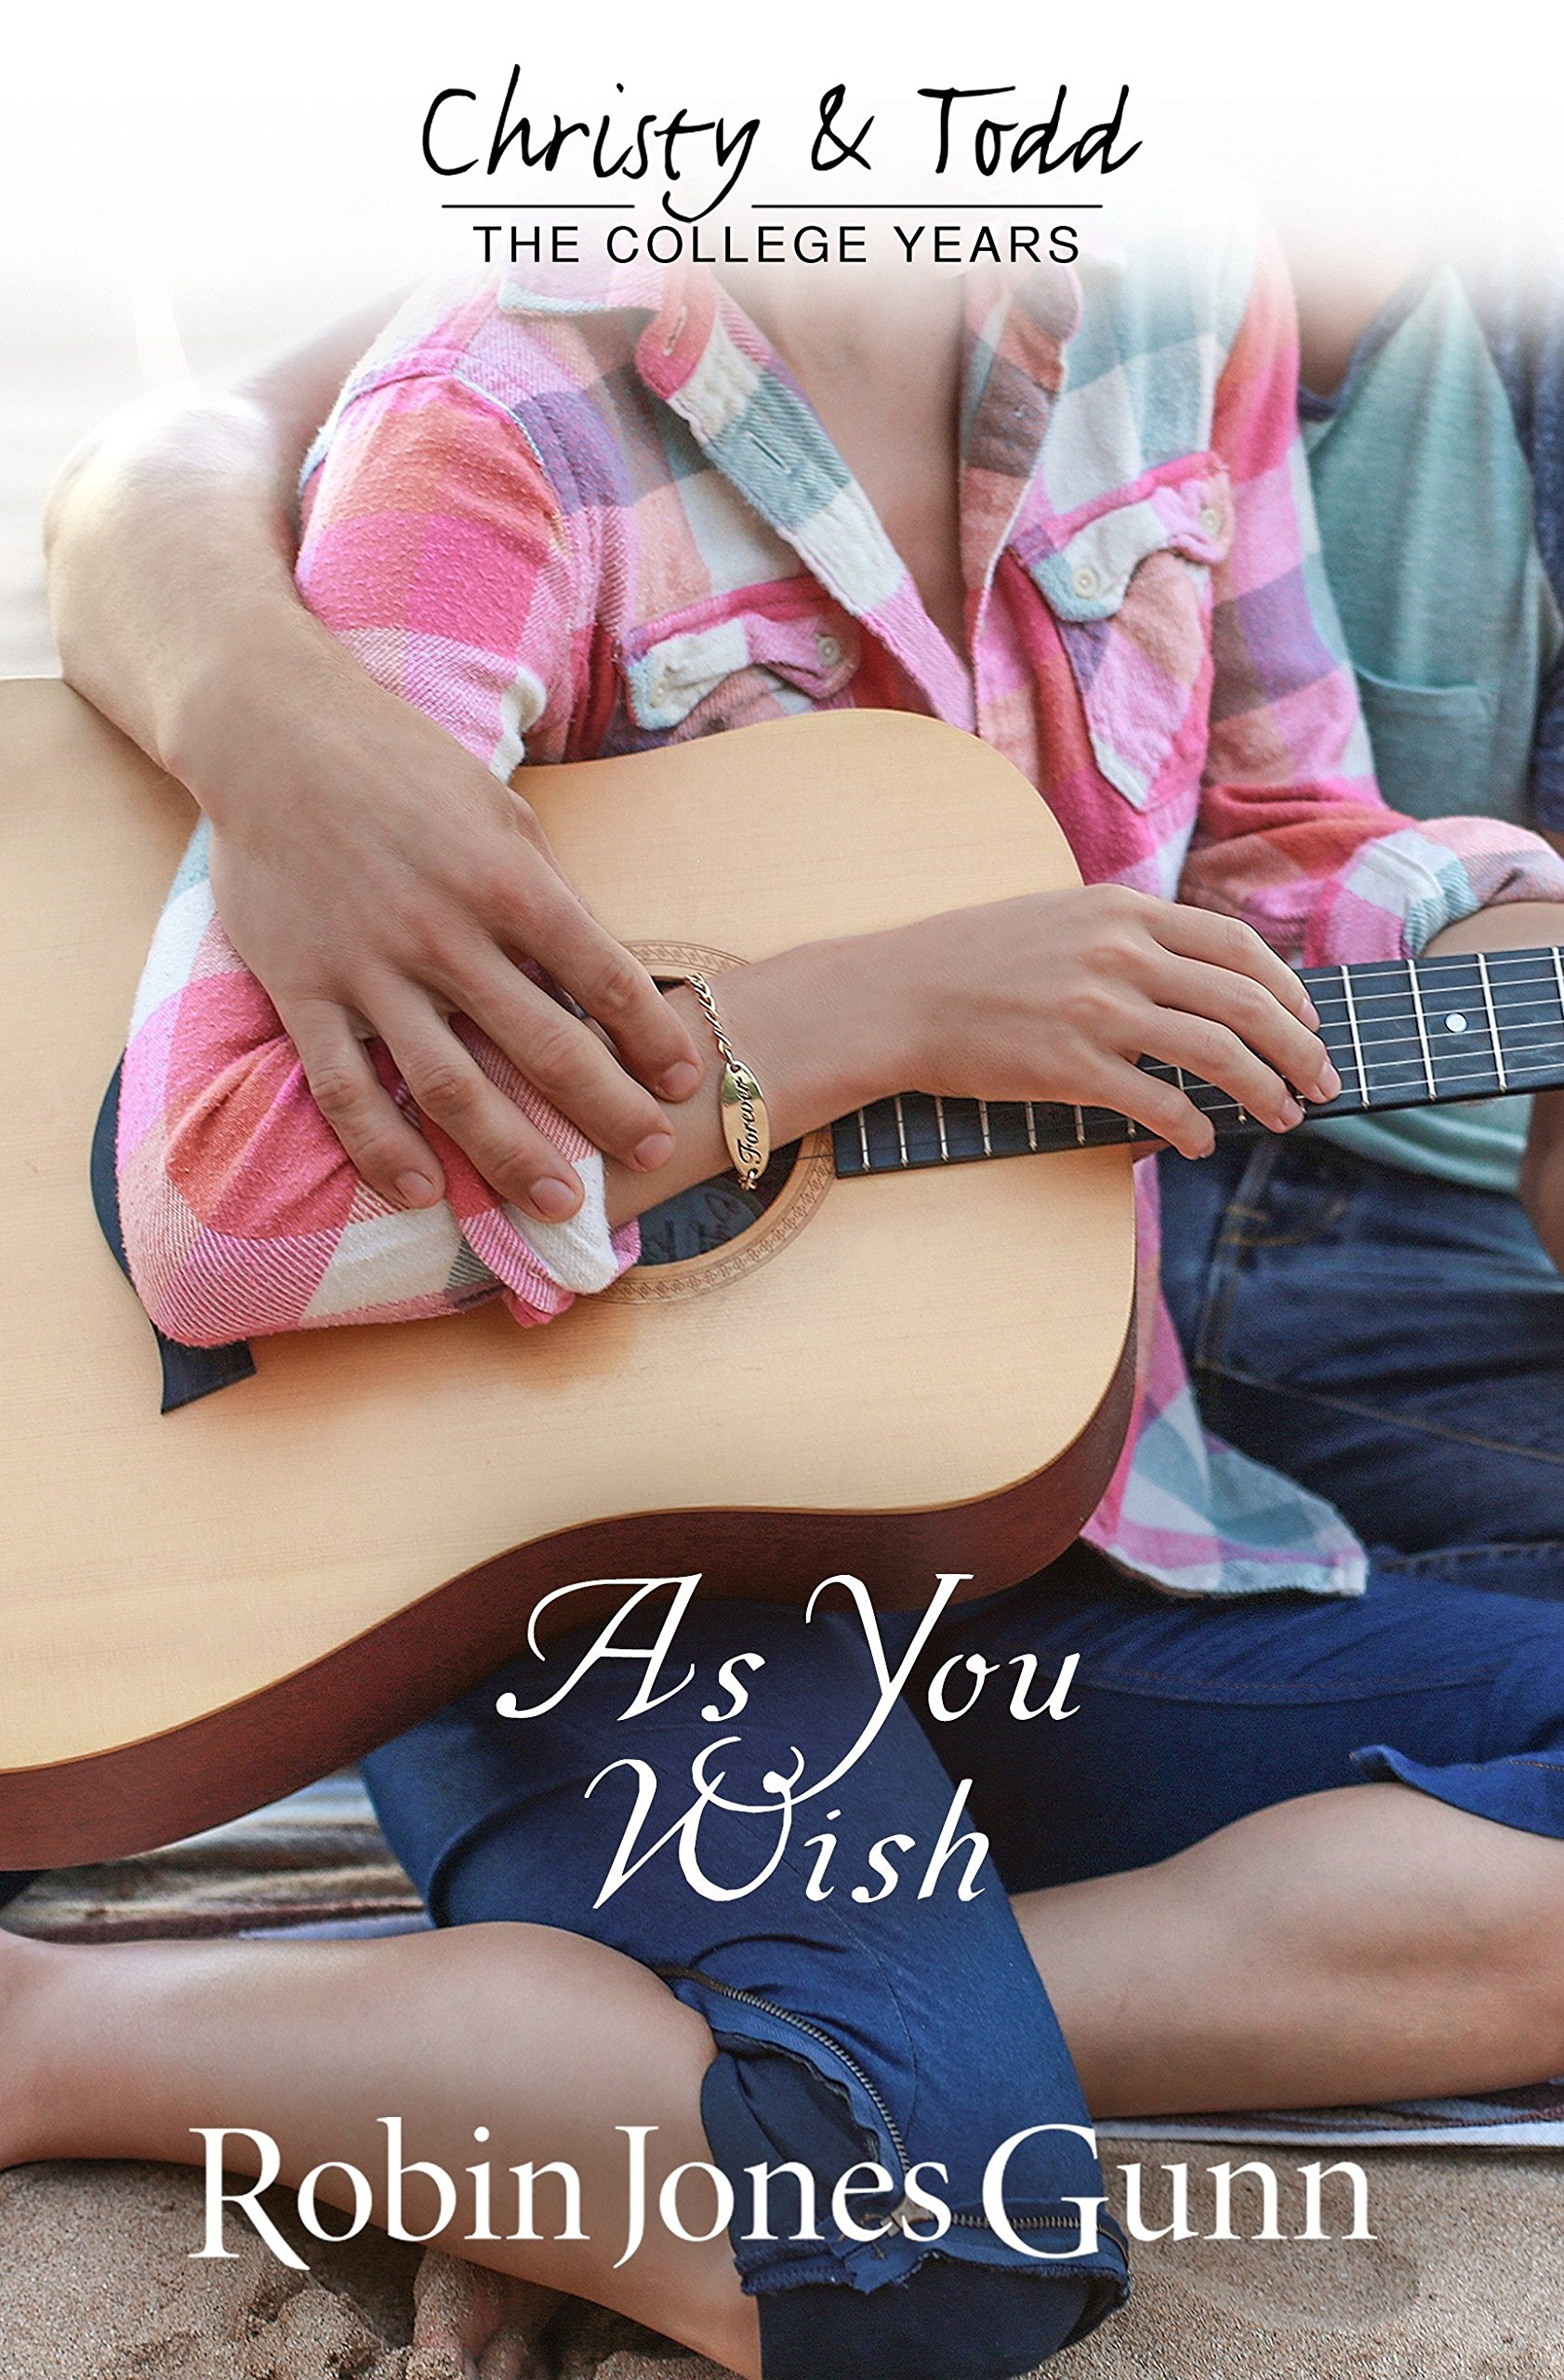 As You Wish (christy And Todd: College Years Book 2) (christy & Todd: College  Years): Robin Jones Gunn: 9781942704010: Amazon: Books